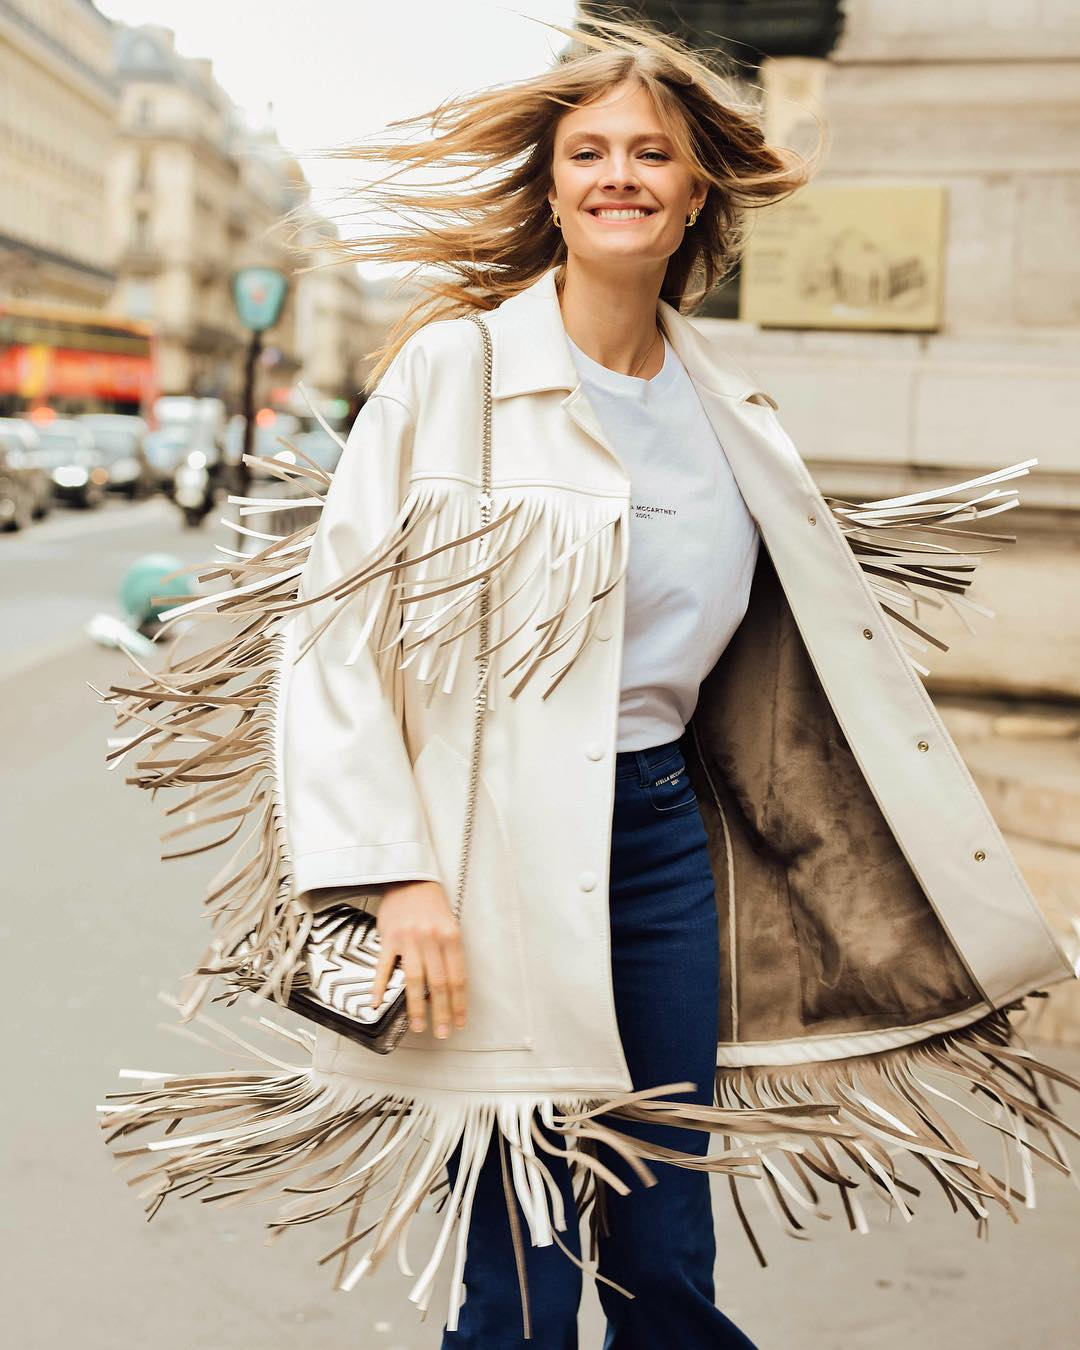 The Fringe Jacket is the Missing Piece Your Closet Needs